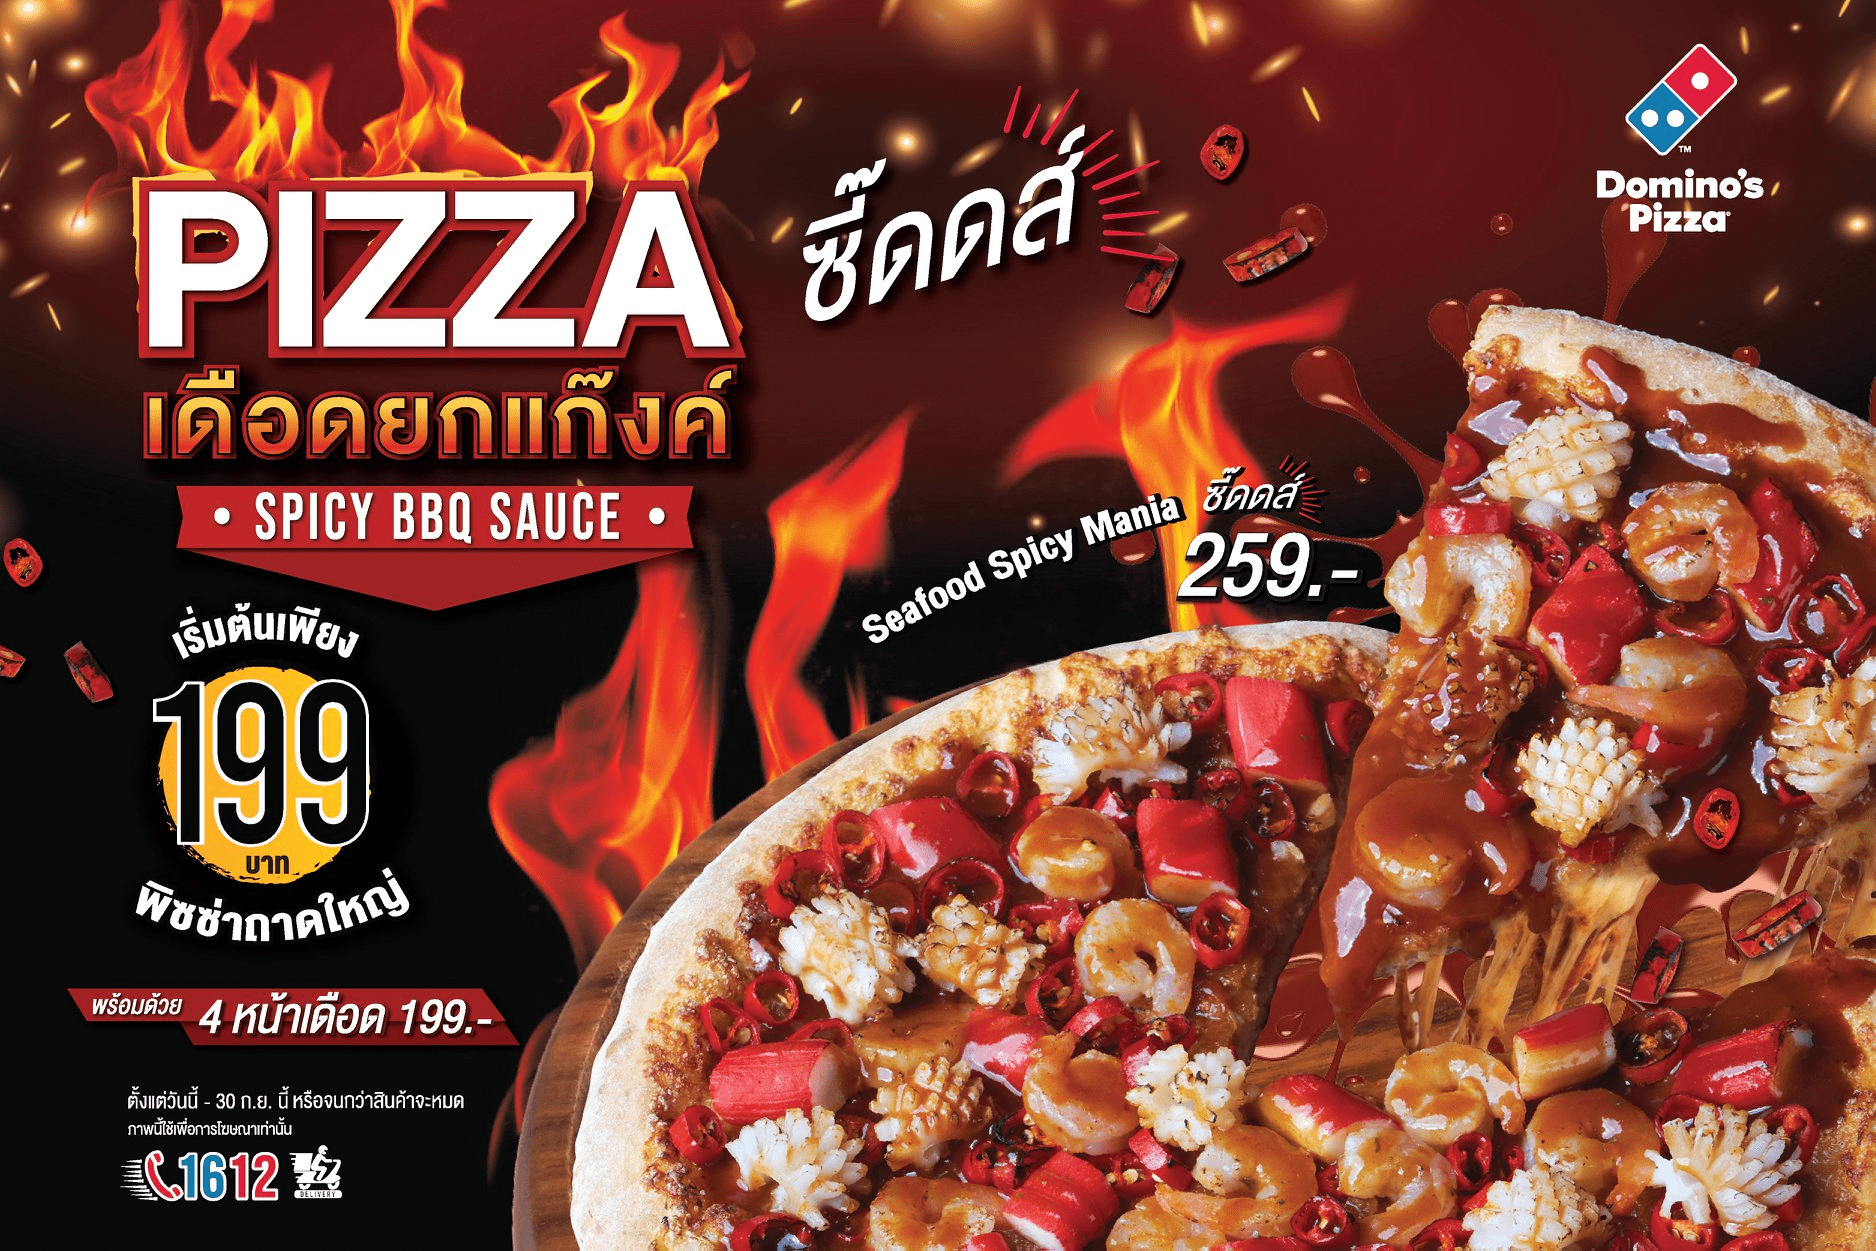 Spicy BBQ Pizza